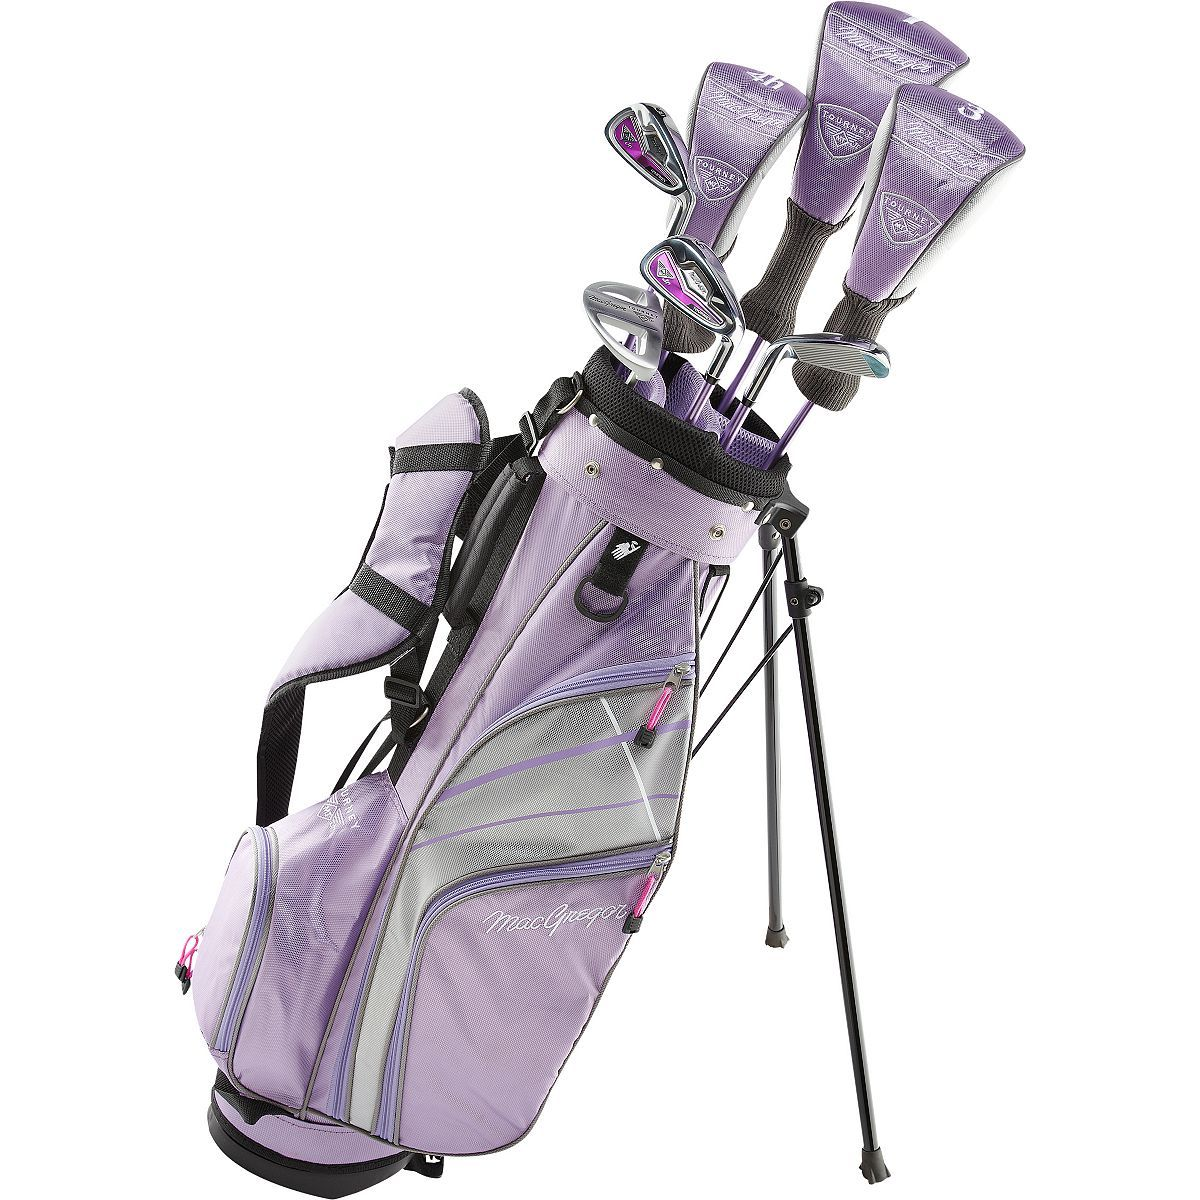 Macgregor Junior Girl S Tourney Full Set Ages 10 12 Gifts For Girls Golf Stores Gifts For Teens